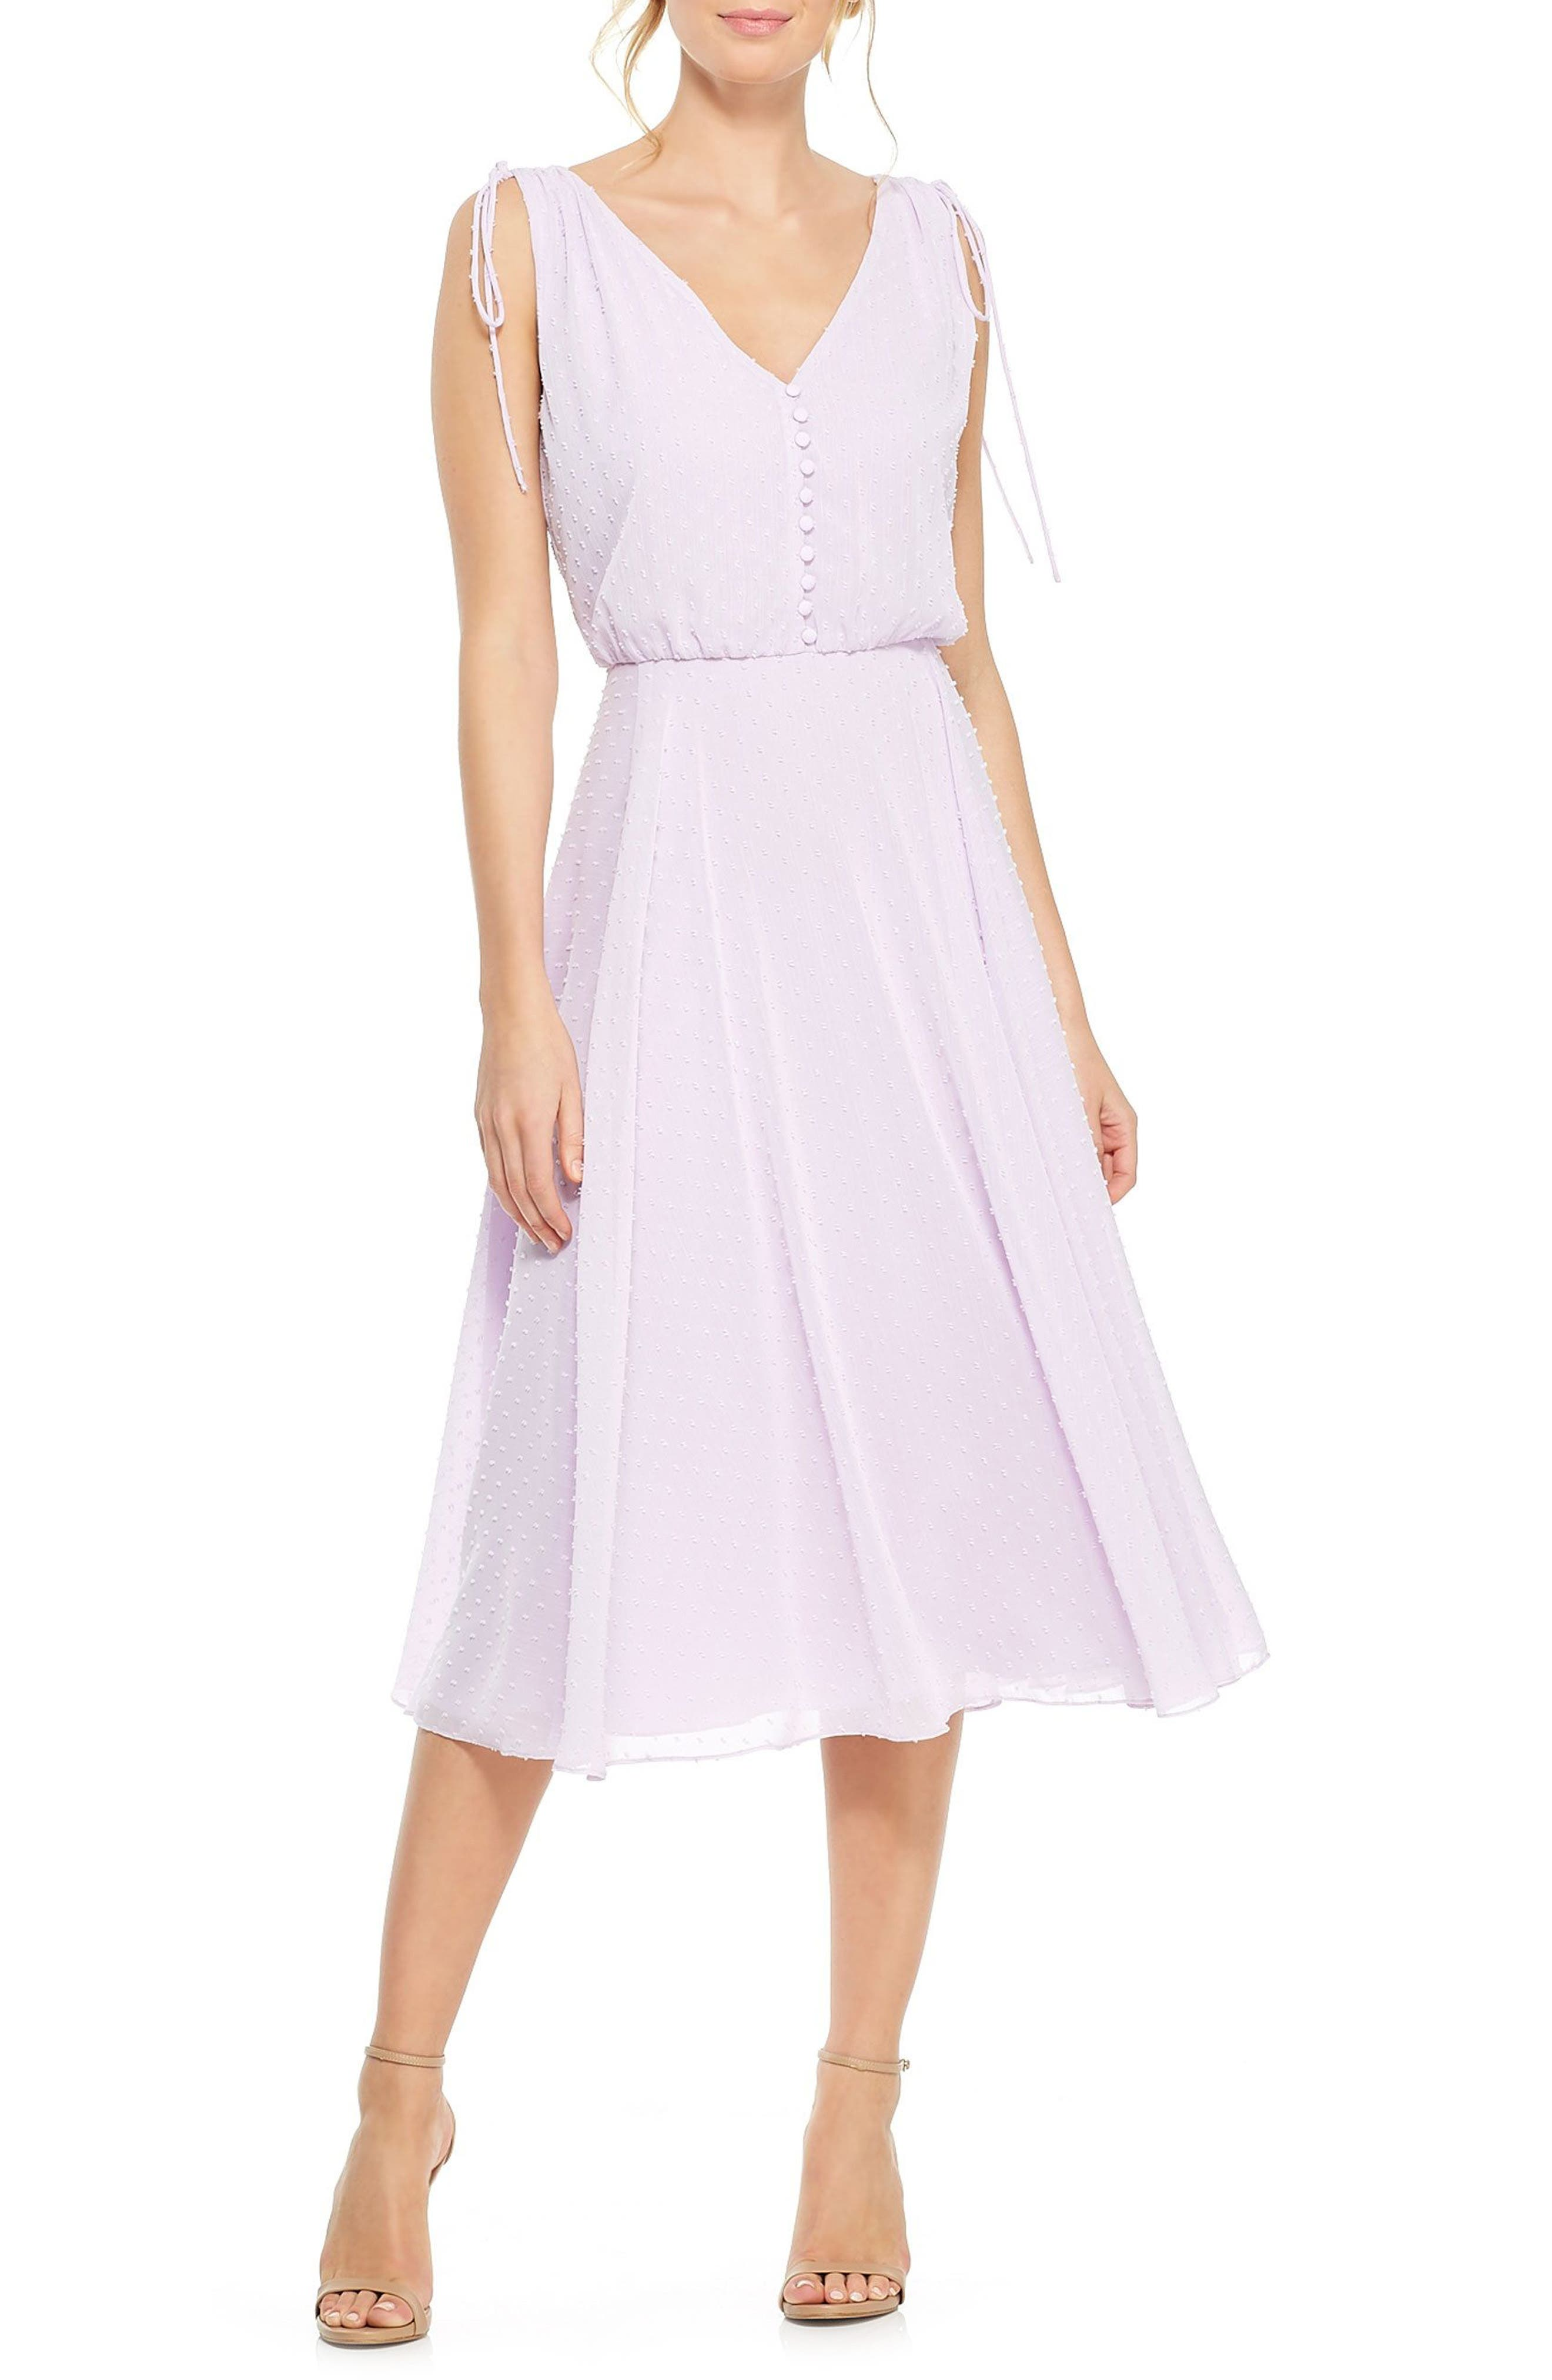 Gal Meets Glam Collection Hillary Clip Dot Chiffon Midi Dress